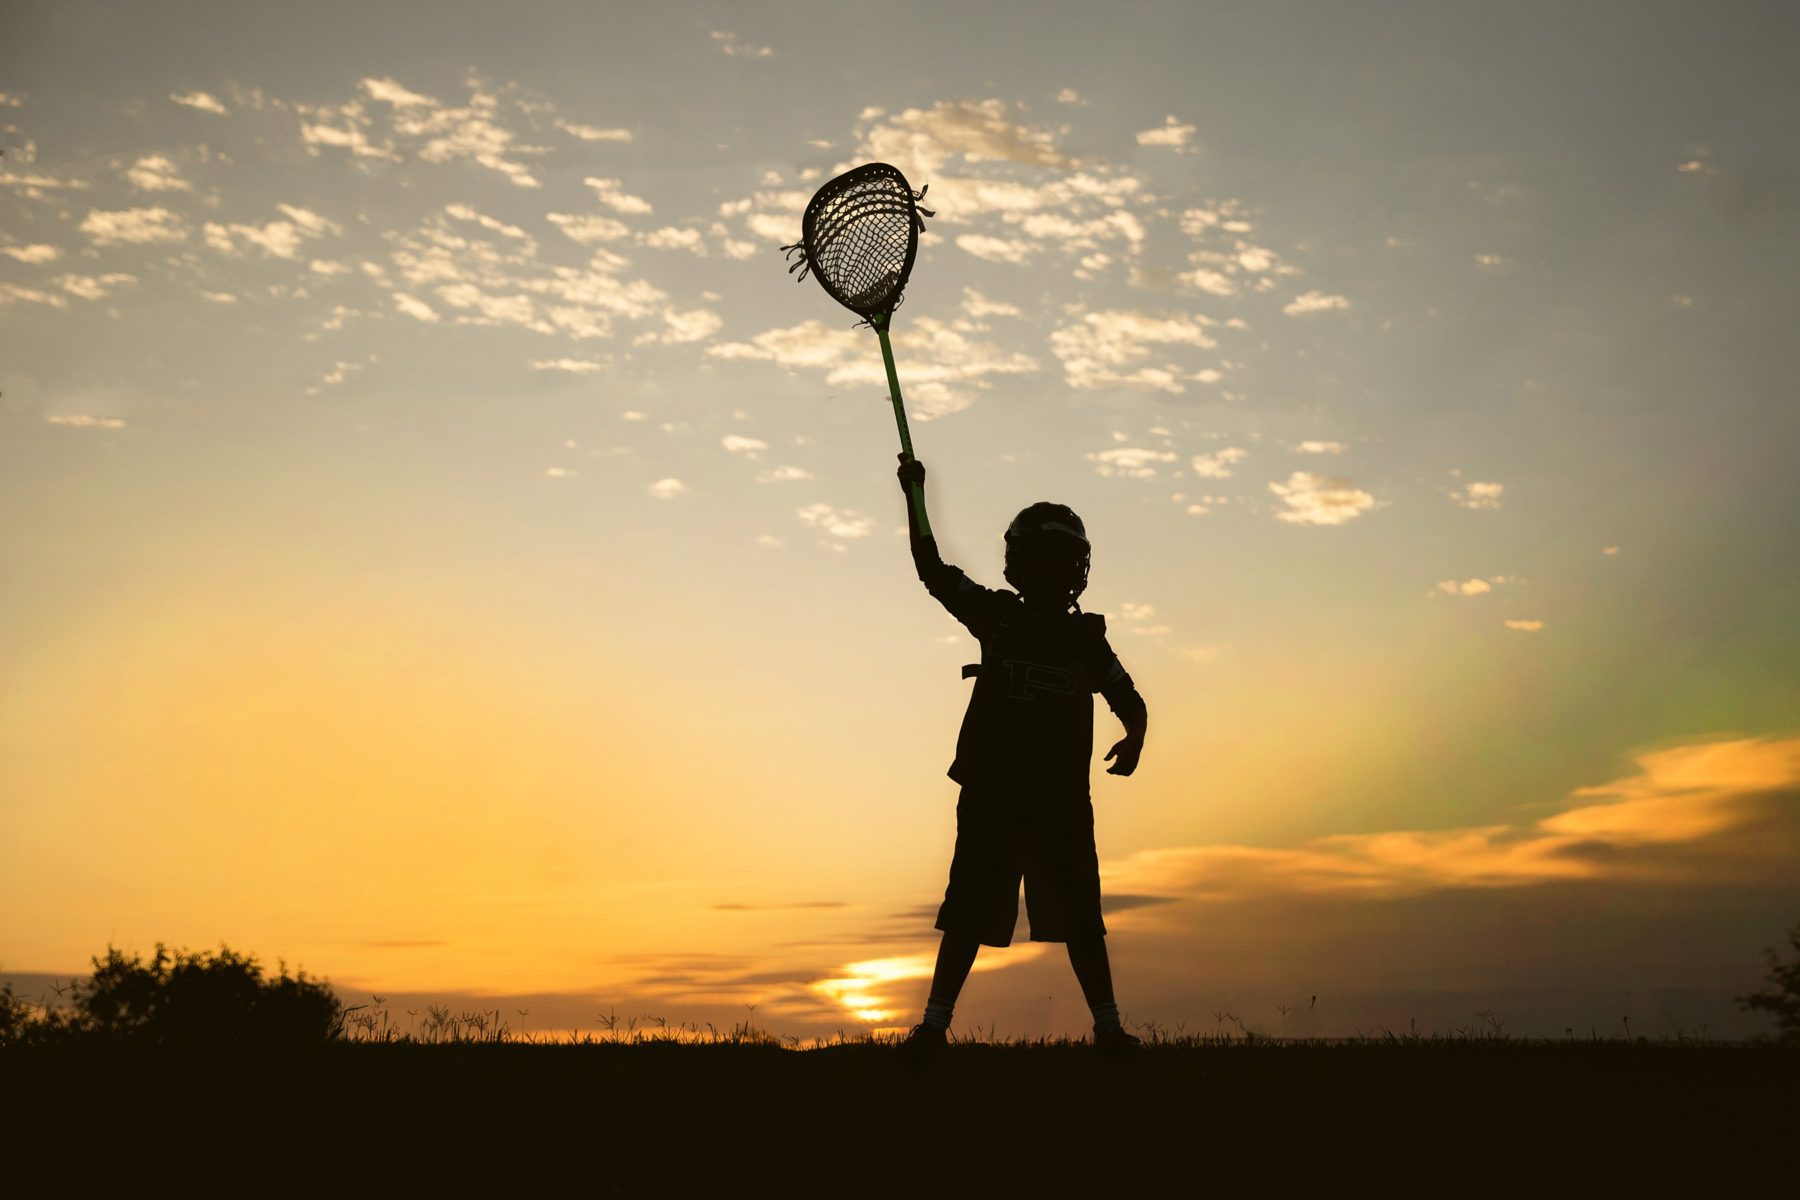 Boy holding up lacrosse stick in silhouette